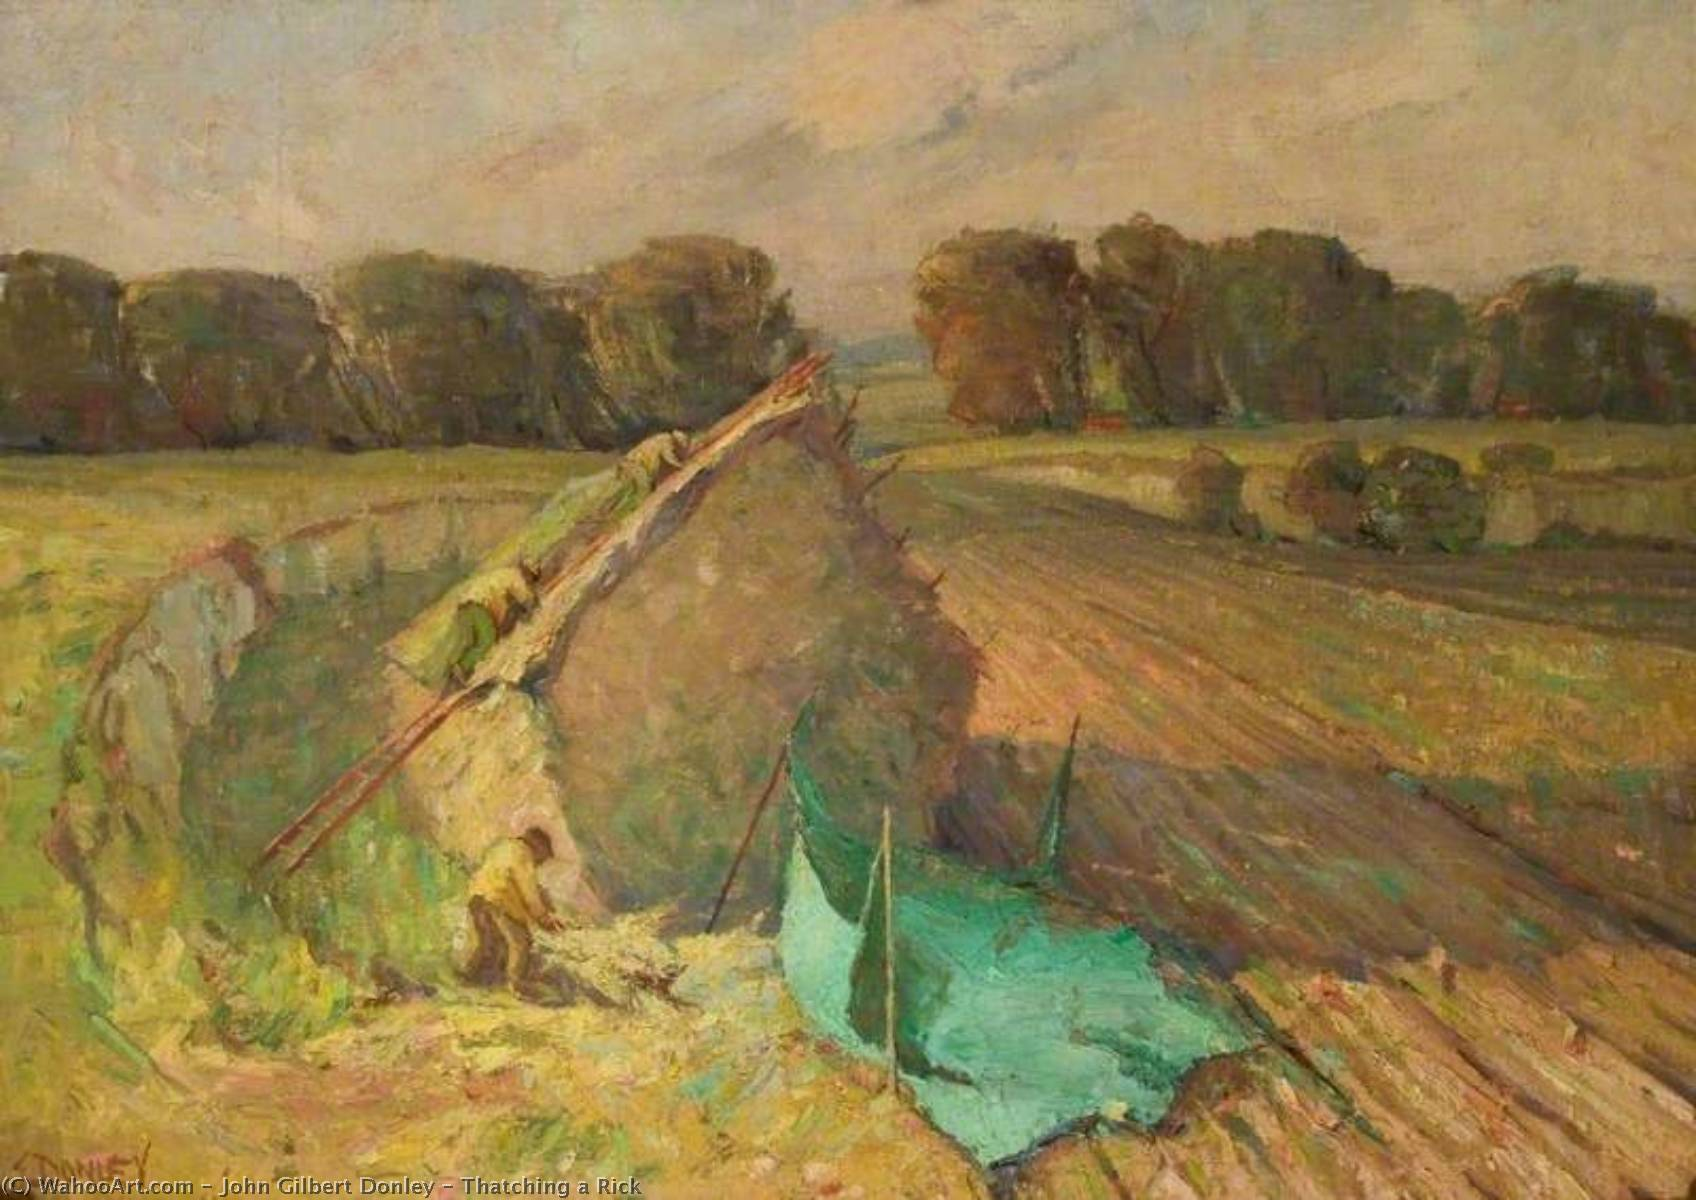 Thatching a Rick, Oil On Canvas by John Gilbert Donley